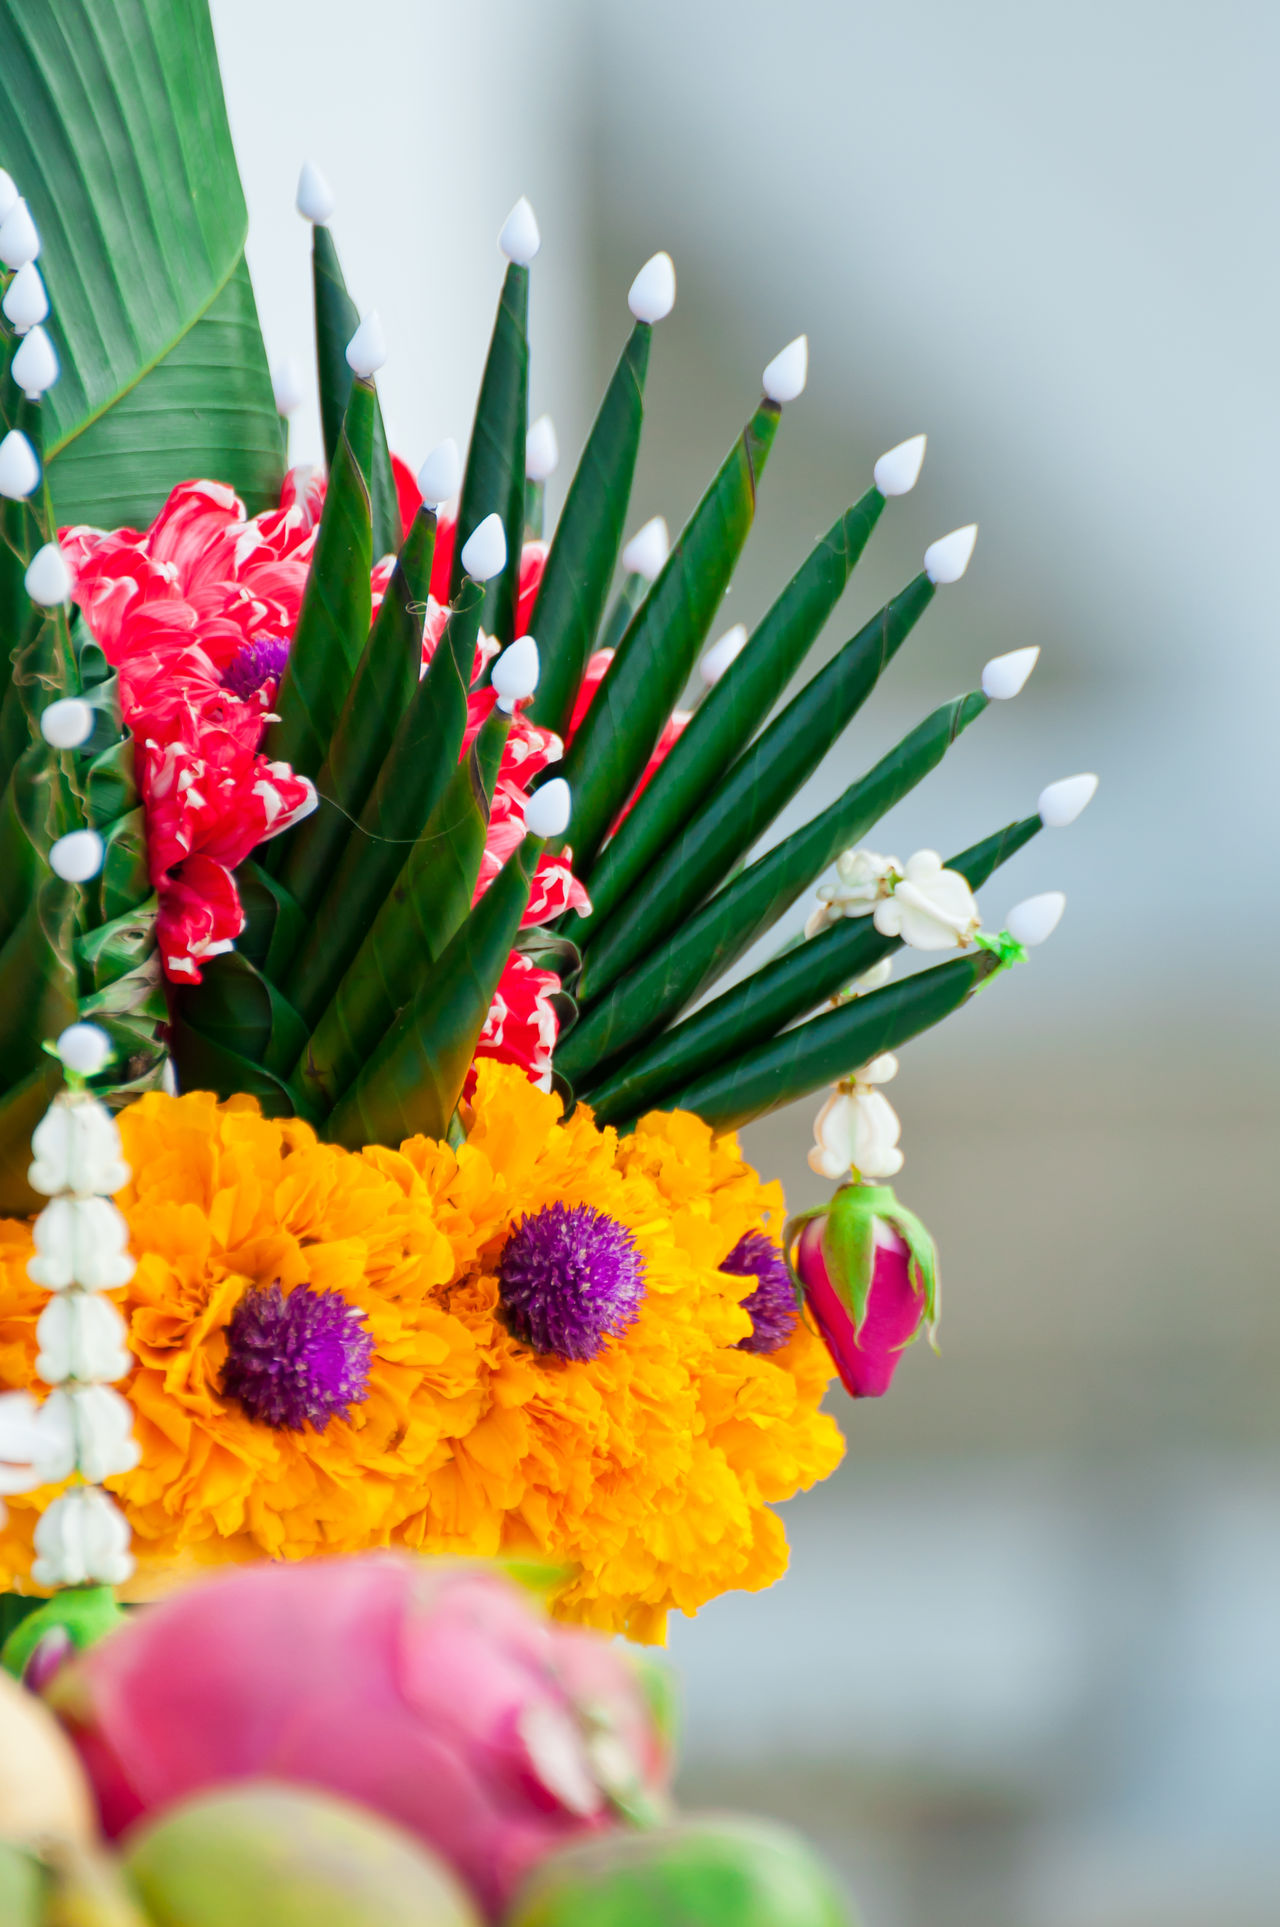 Garlands of flowers and sacrifice. For the idolatry of the king. Also known in Thailand as BAISǏI Amaranth BAISǏI Banana Leaf Believe Close-up Crown Flower Culture Faith Flower Fruits Gardenia Garlands Green Color Idolatry Multi Colored No People Ornament Rice Offering Sacrifice Thailand Worship Worshipping